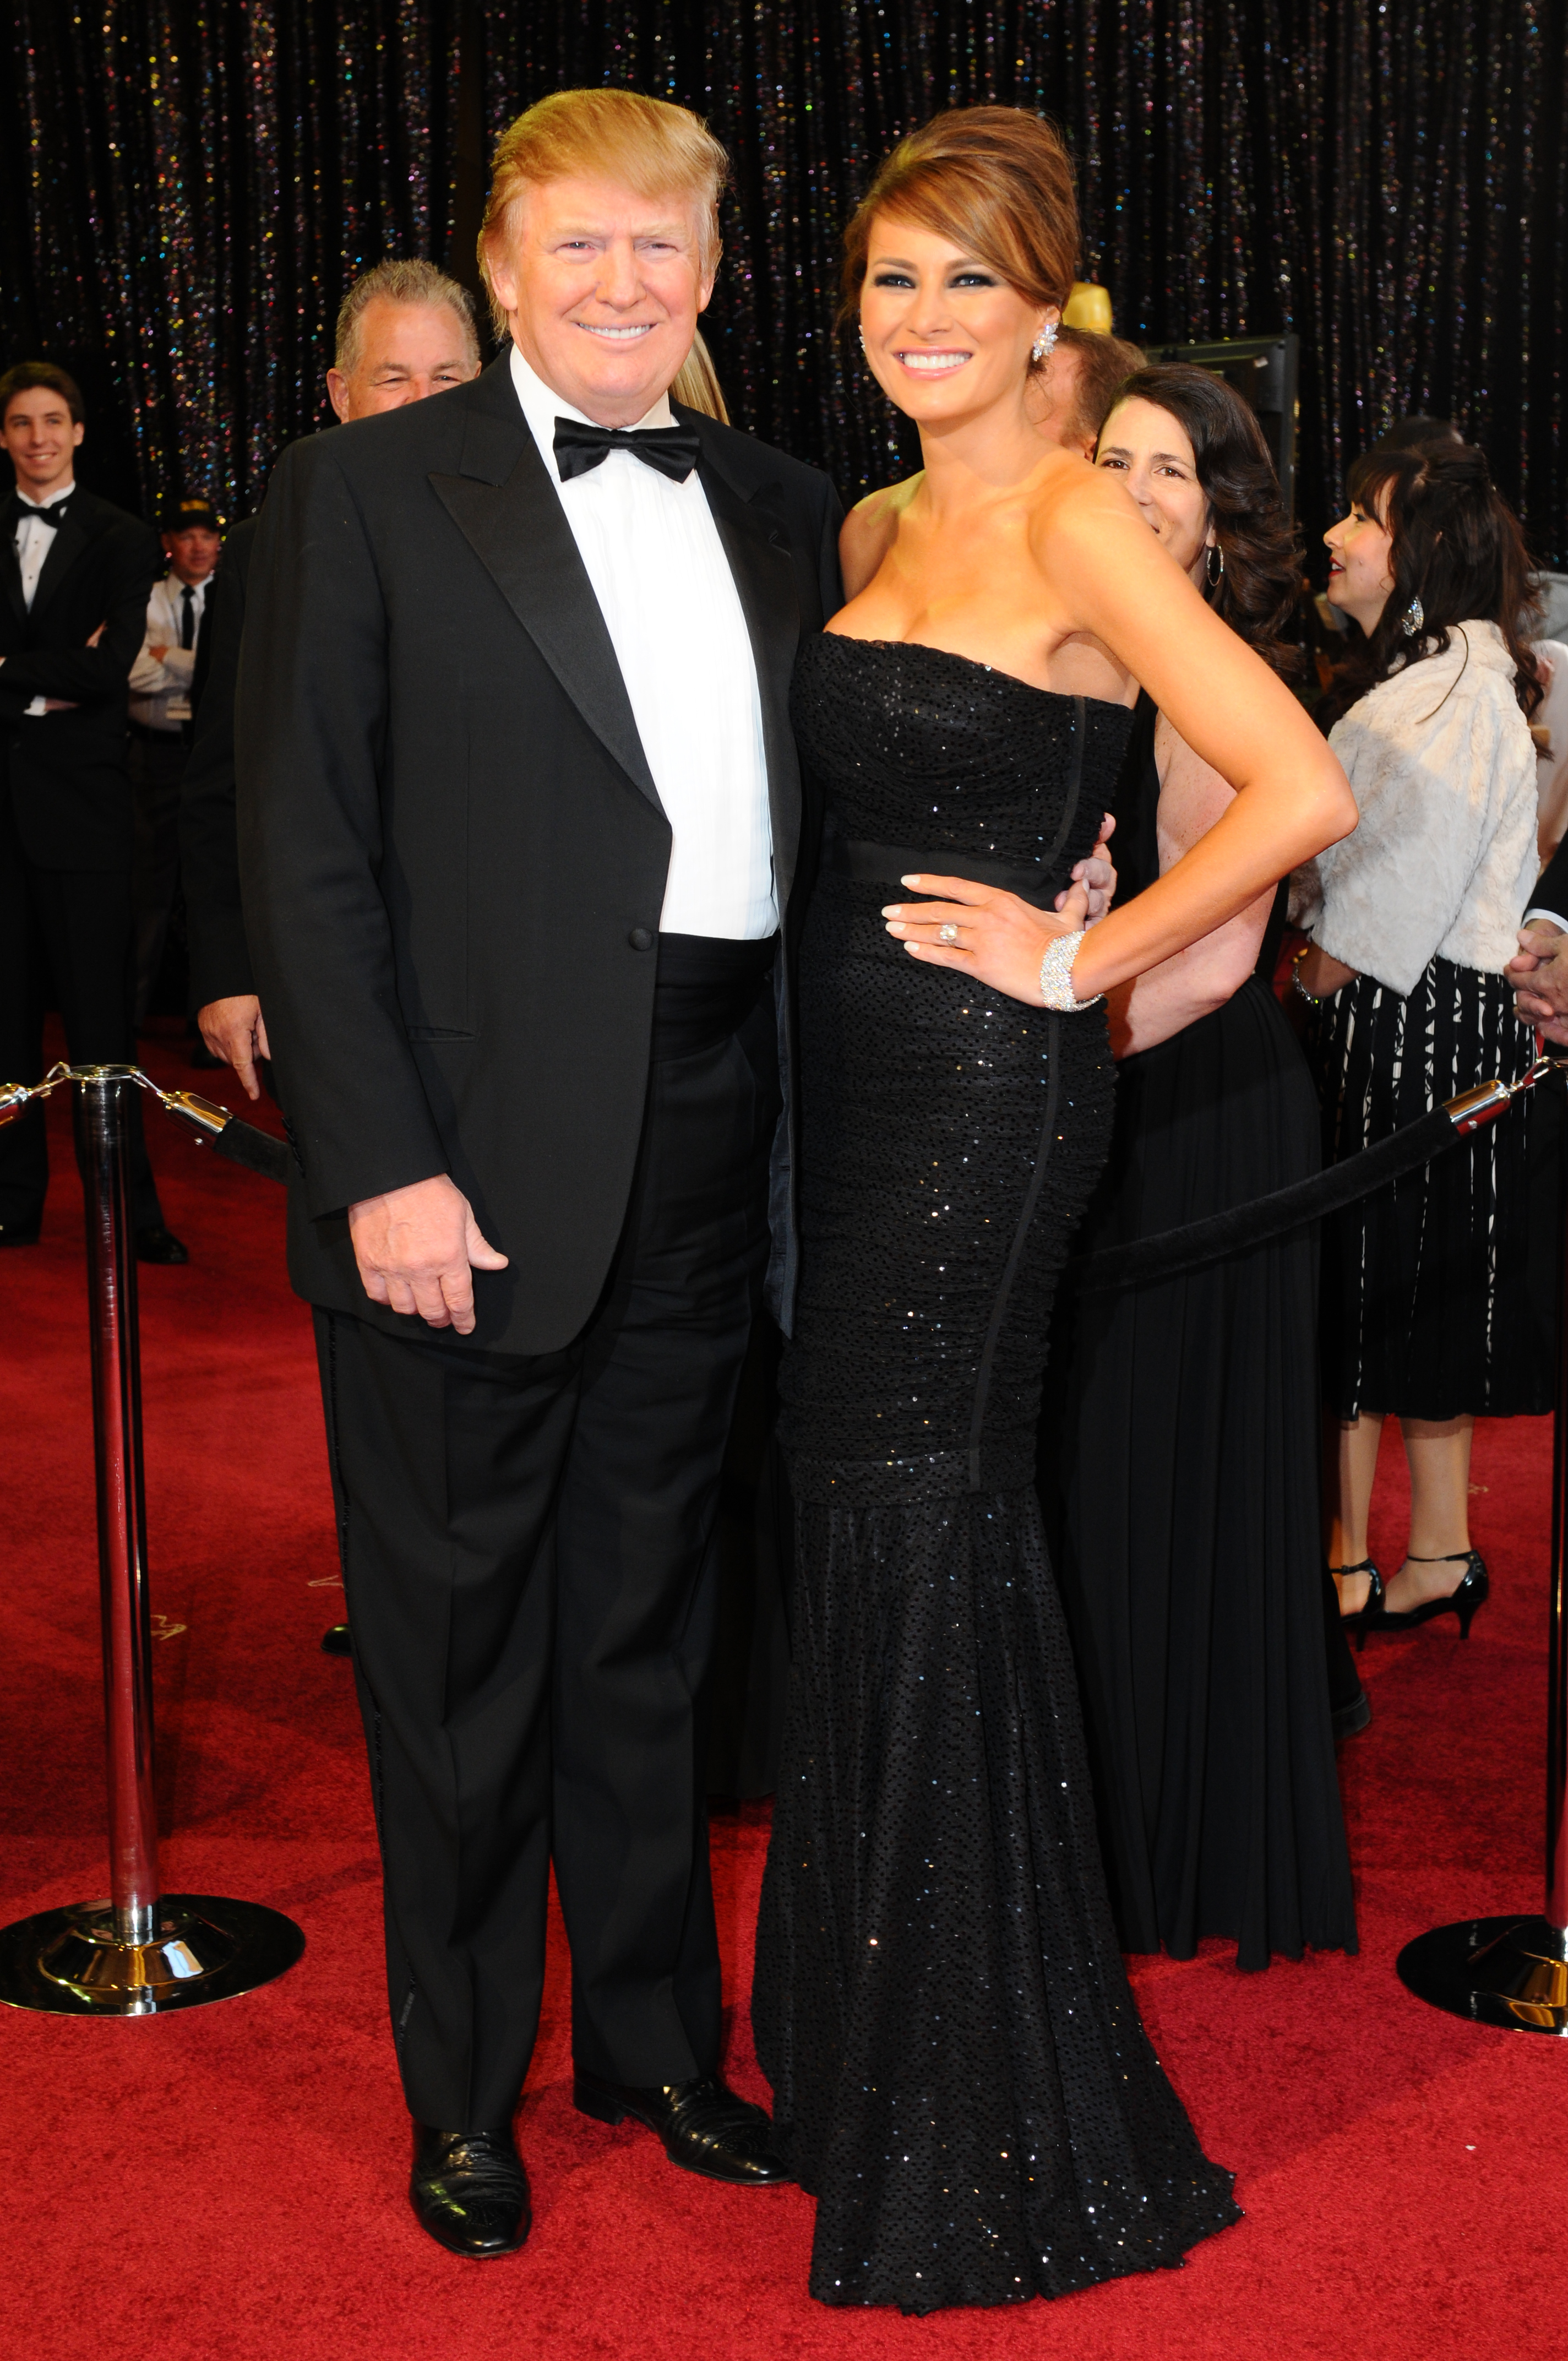 The Trumps At The Oscars